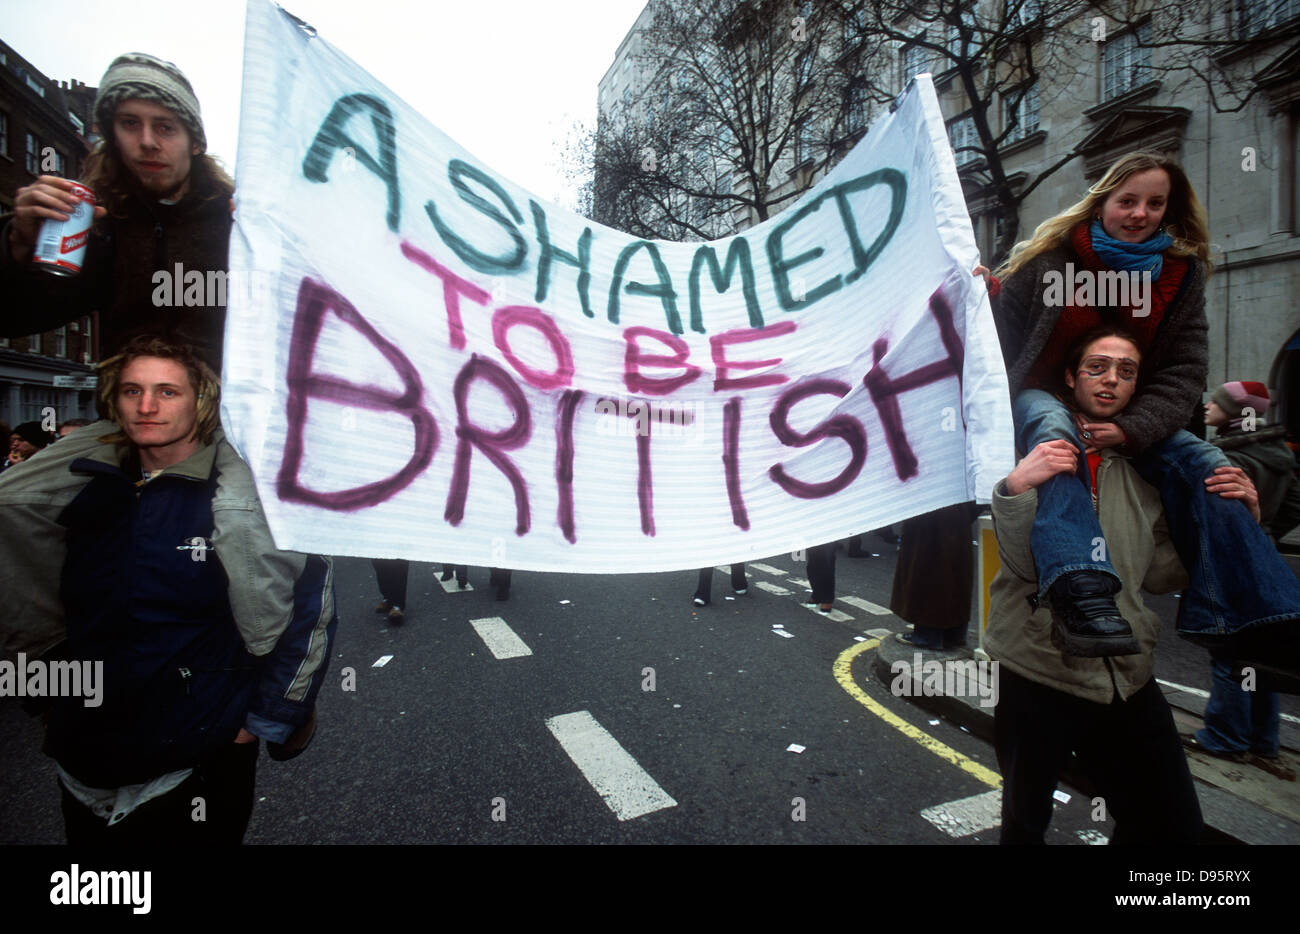 Stop the War in Iraq demo, London, UK, 15 February 2003. - Stock Image